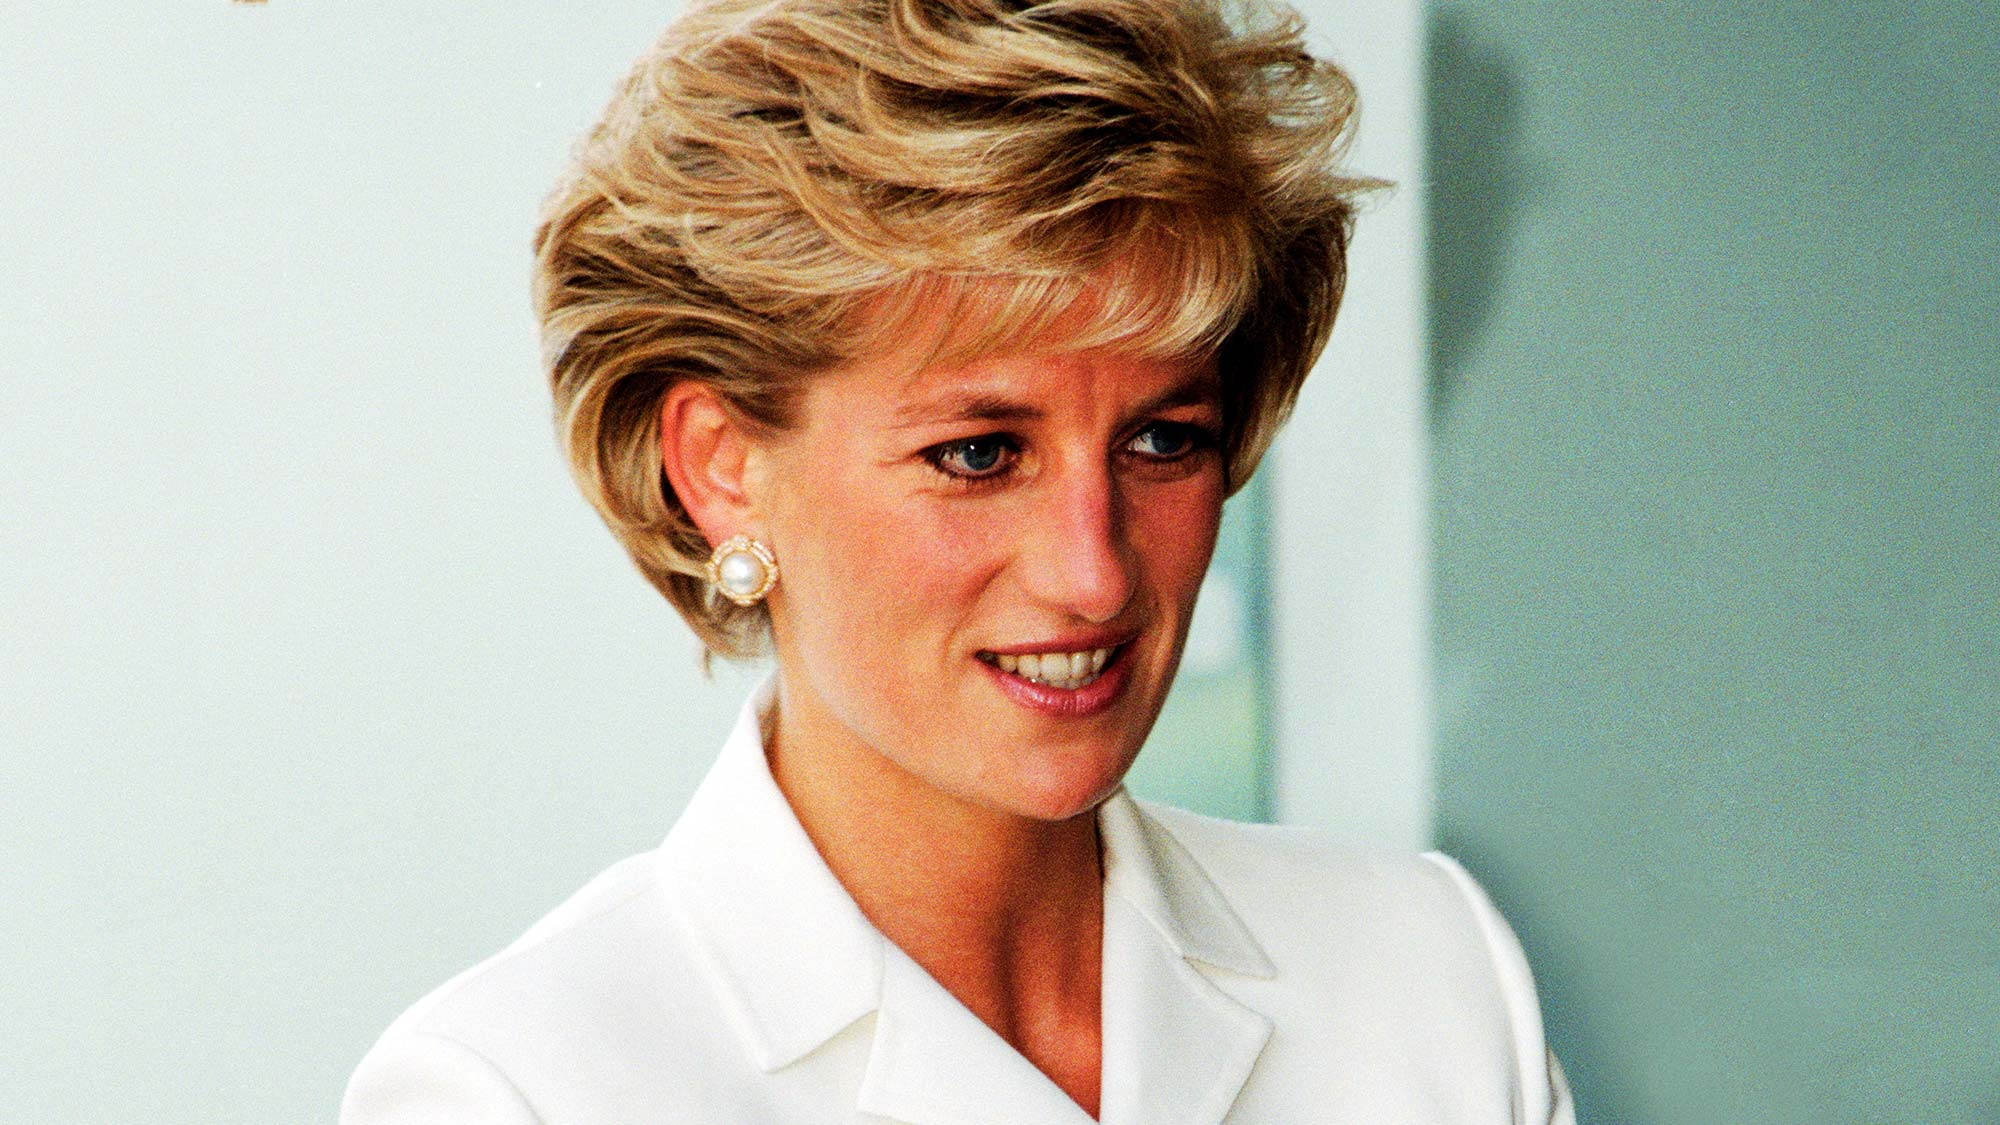 Princess diana is getting a memorial statue to commemorate for Princess diana new photos